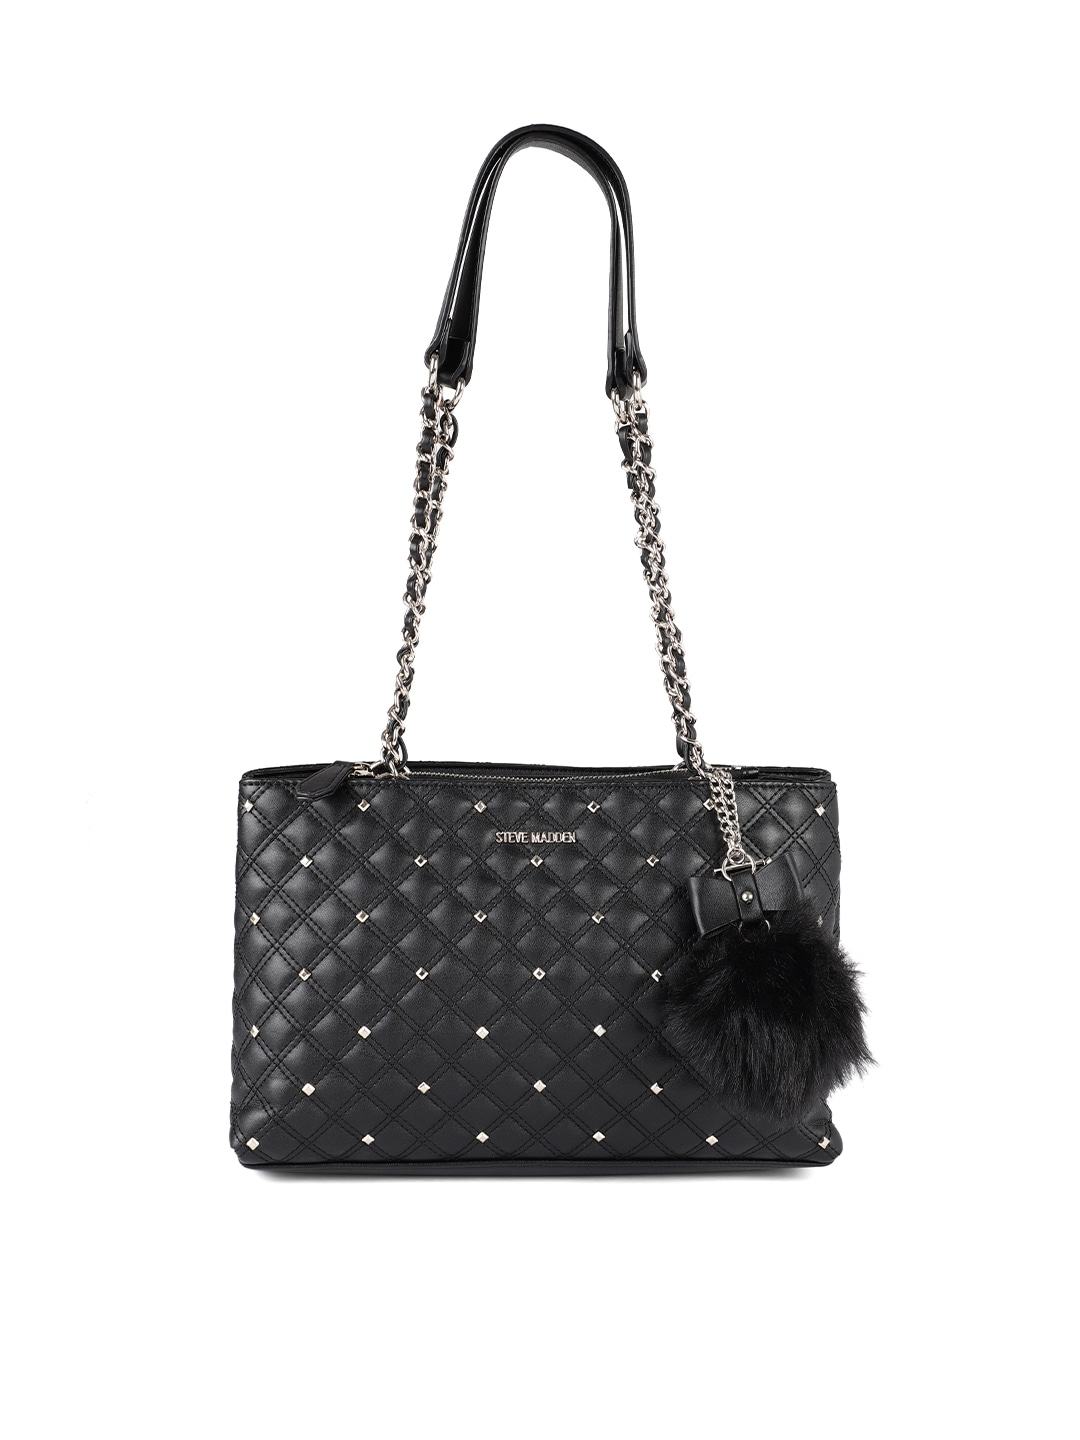 ca5d68d088 Steve Madden Black Studded Handbag - Foto Handbag All Collections ...